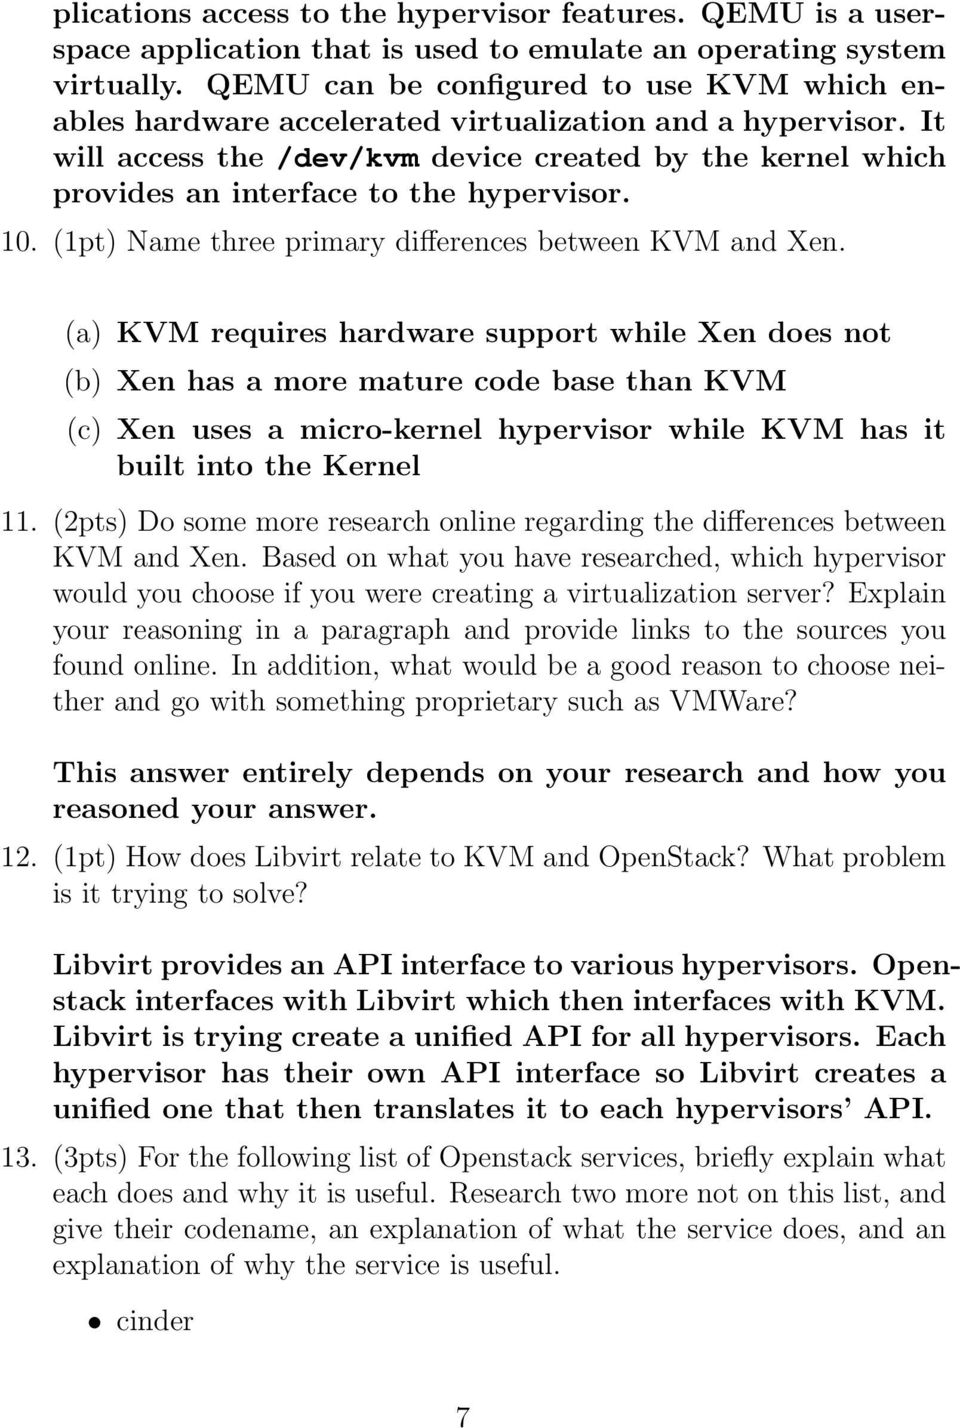 It will access the /dev/kvm device created by the kernel which provides an interface to the hypervisor. 10. (1pt) Name three primary differences between KVM and Xen.